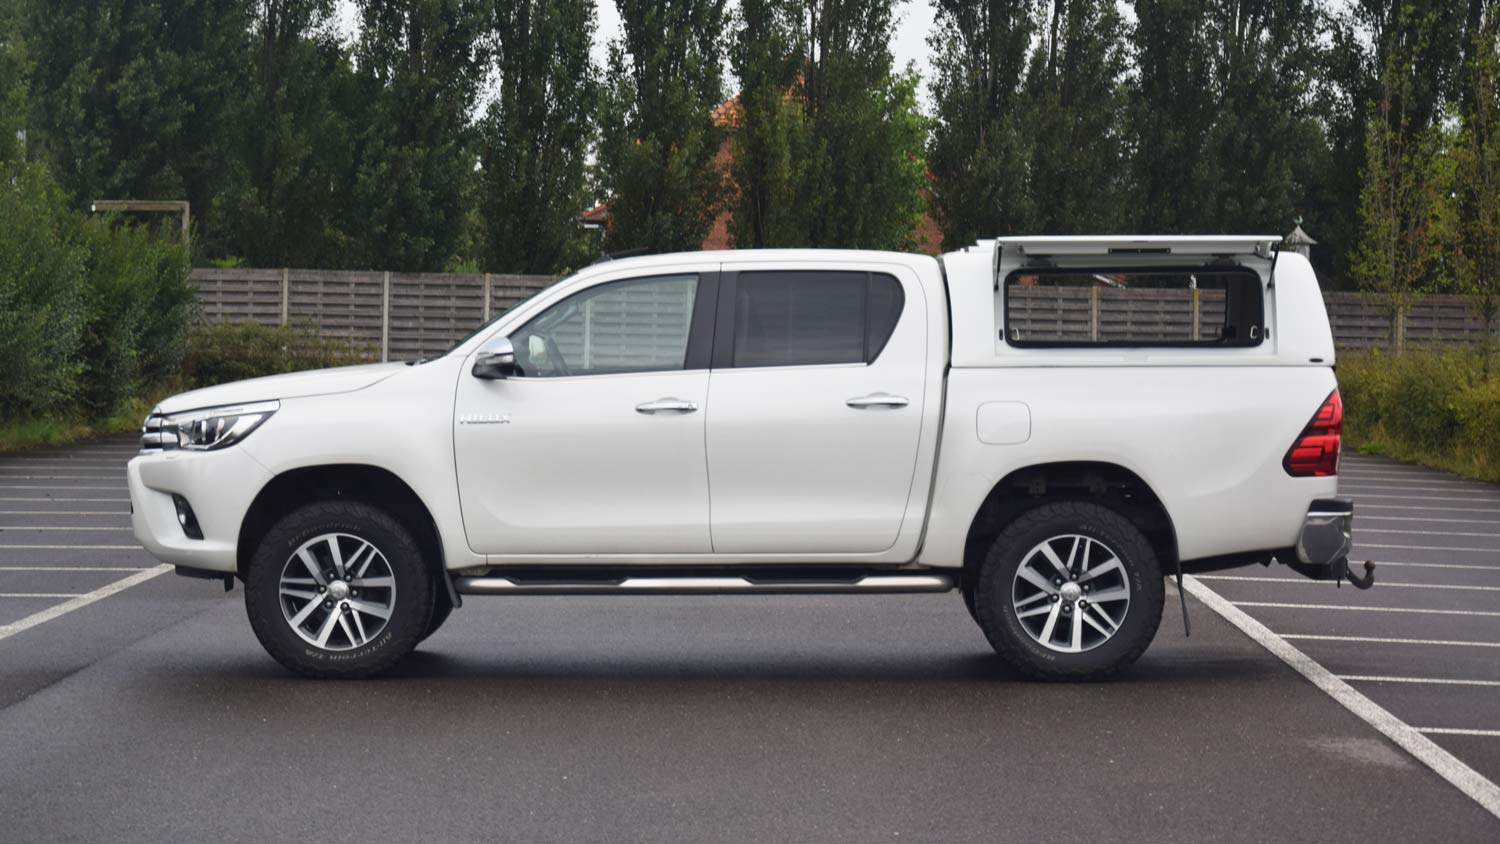 Force Pro Plus Canopy on Toyota Hilux 2016 - Image 5